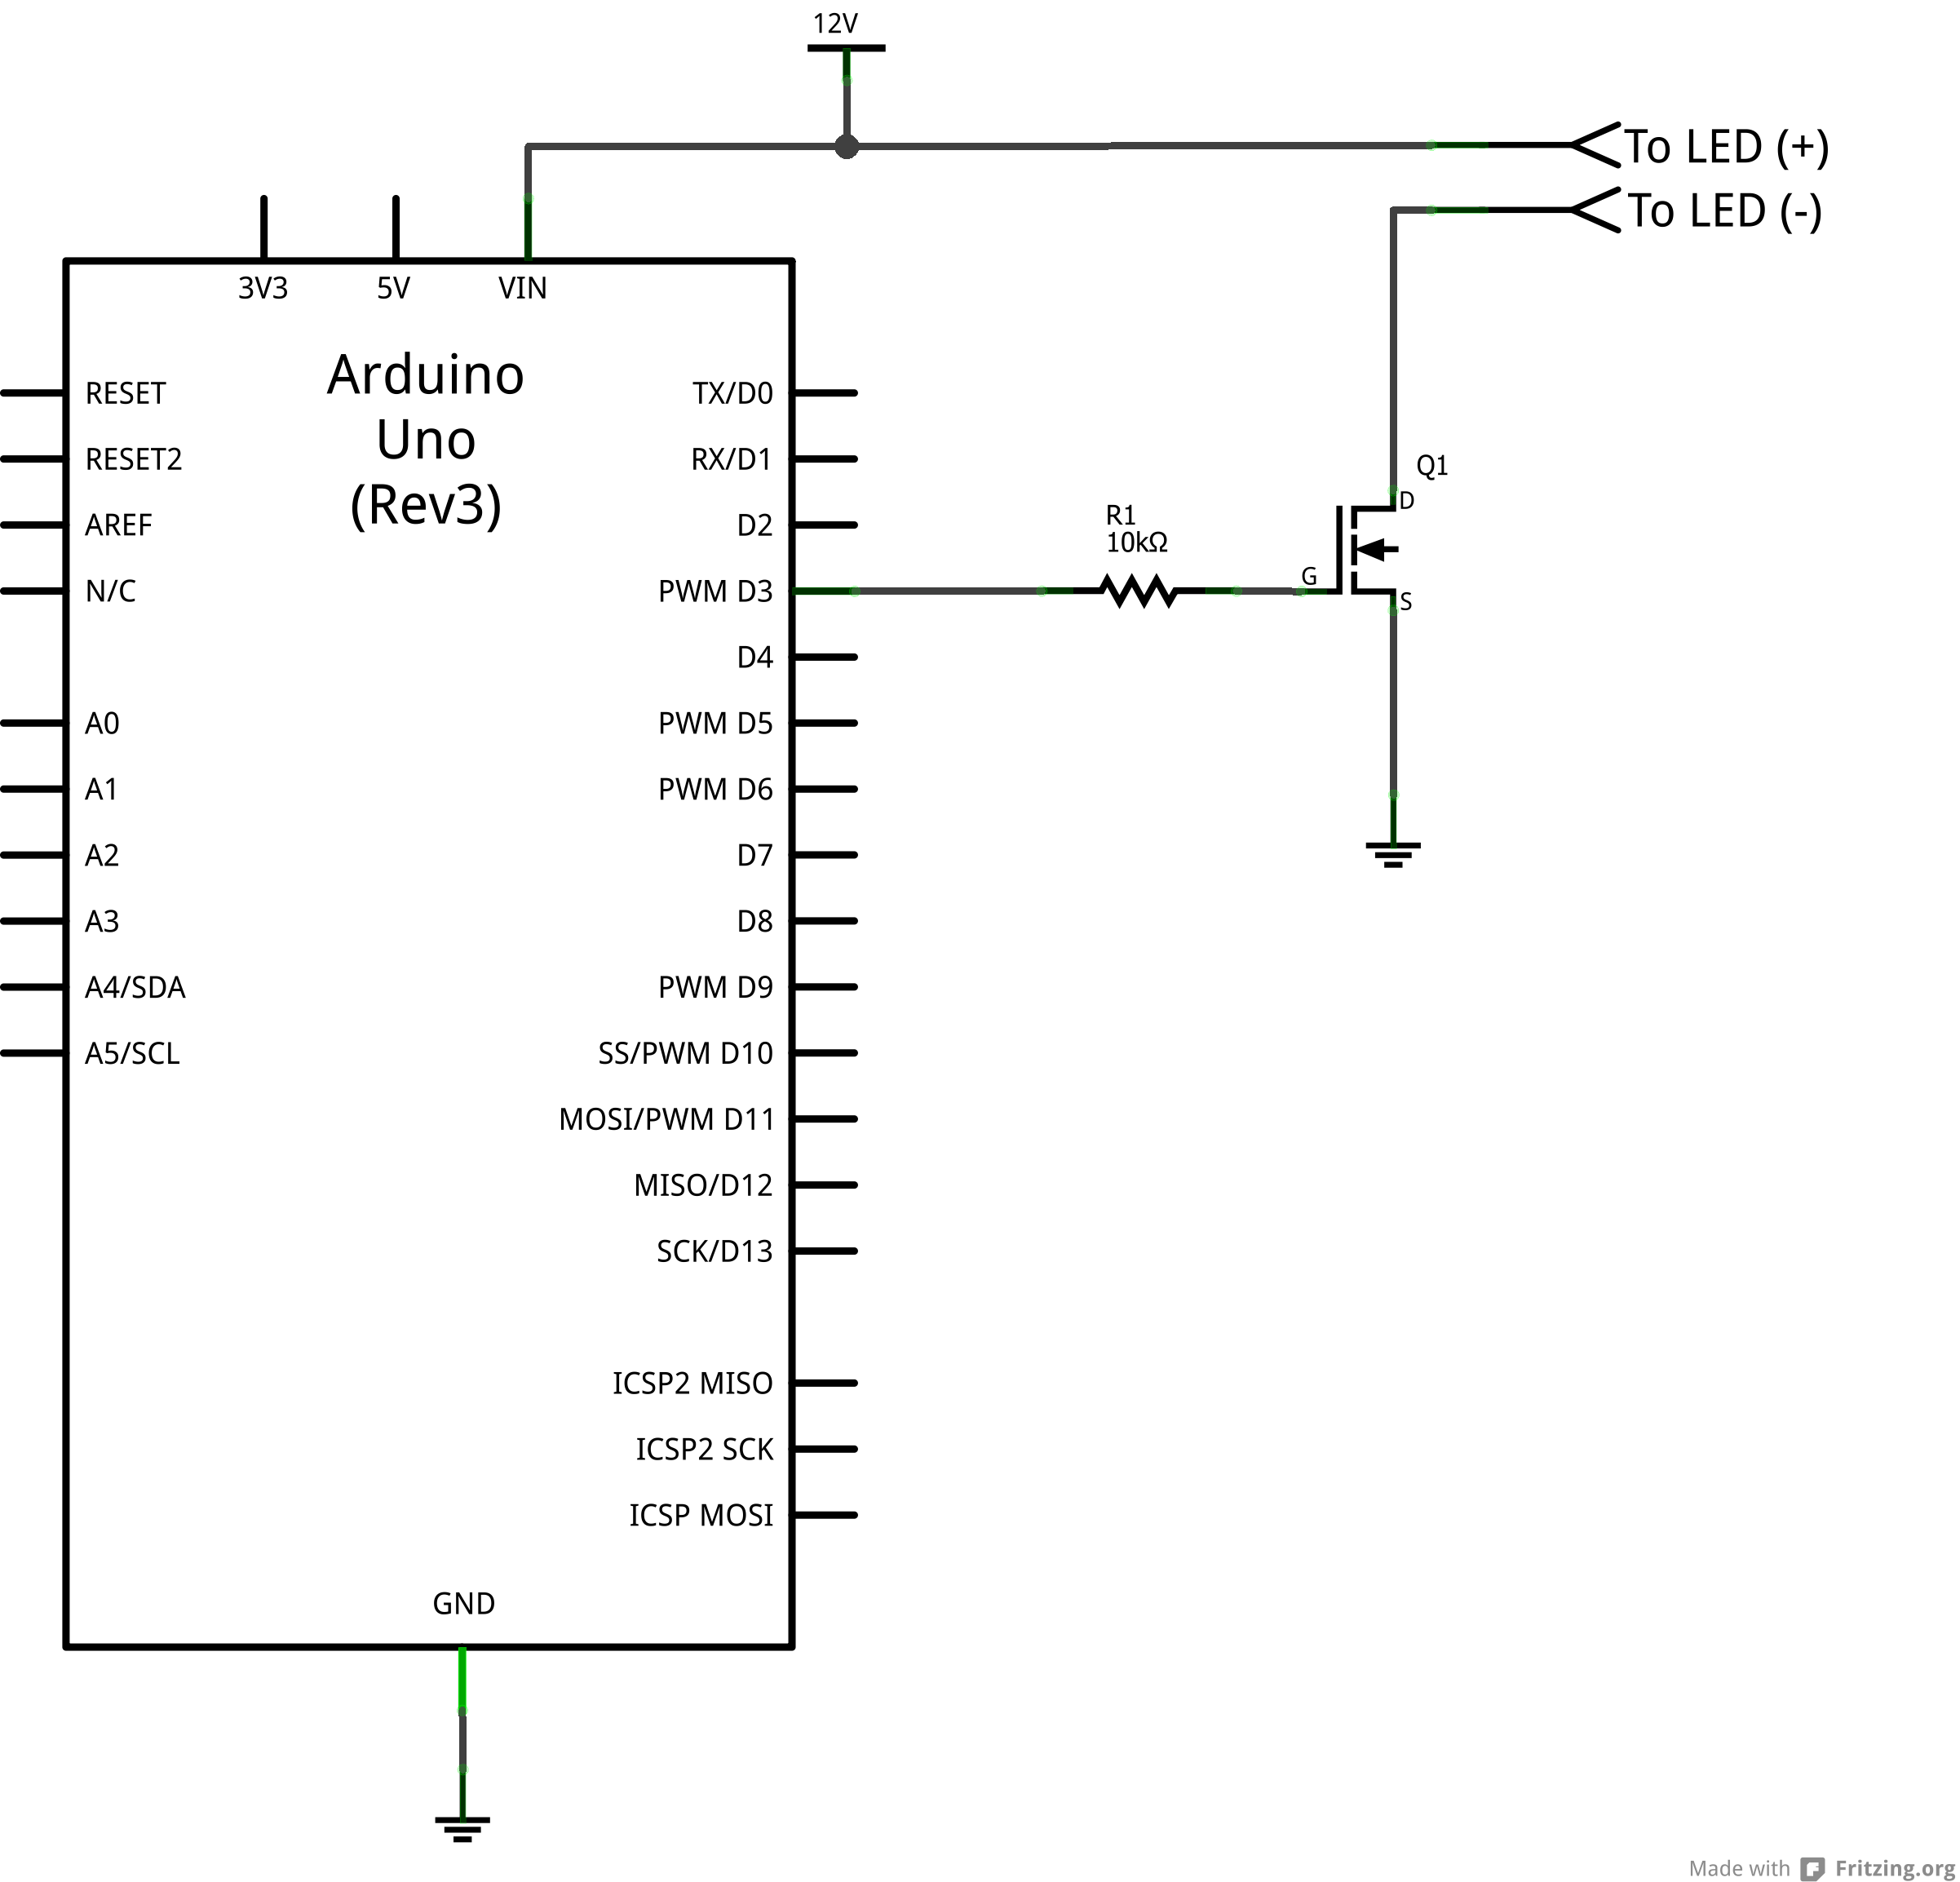 How to do a simple overcurrent protection/circuit breaker